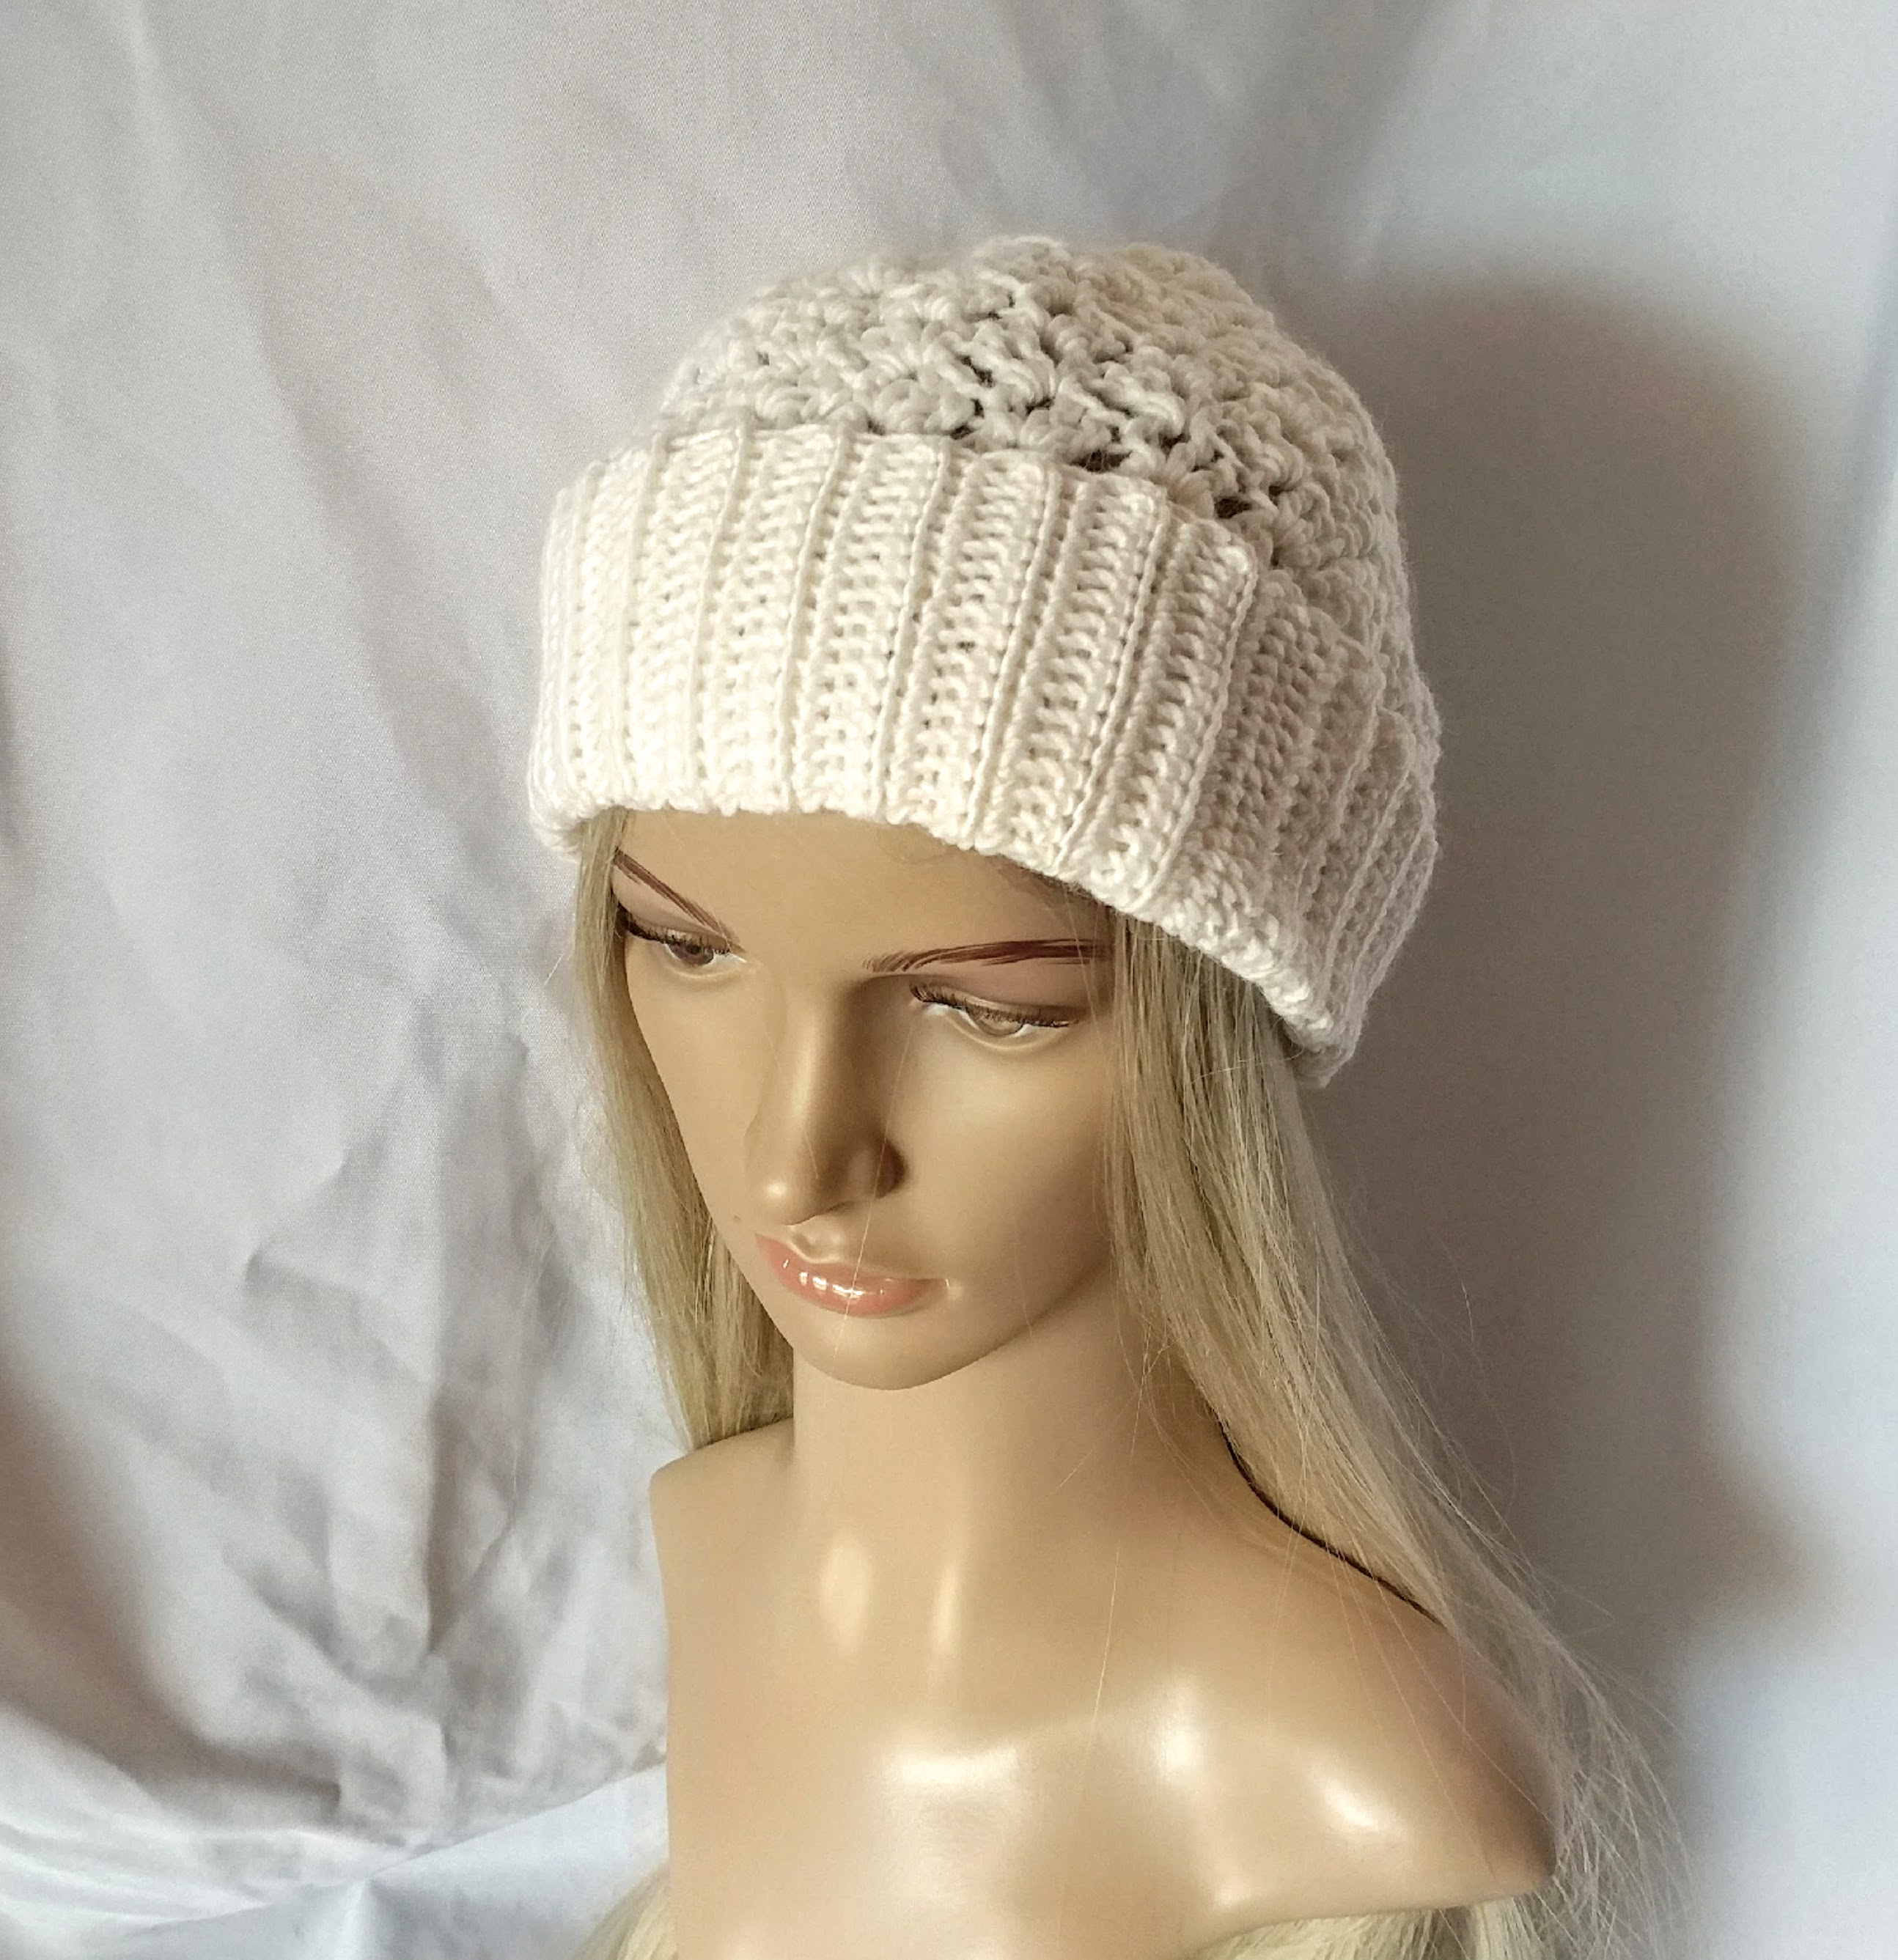 Ivory Wool Hat Ribbed Brim Cream Slouchy lacy Beanie Handmade Crochet  Stocking cap – 910woolgathering 8a388da4333